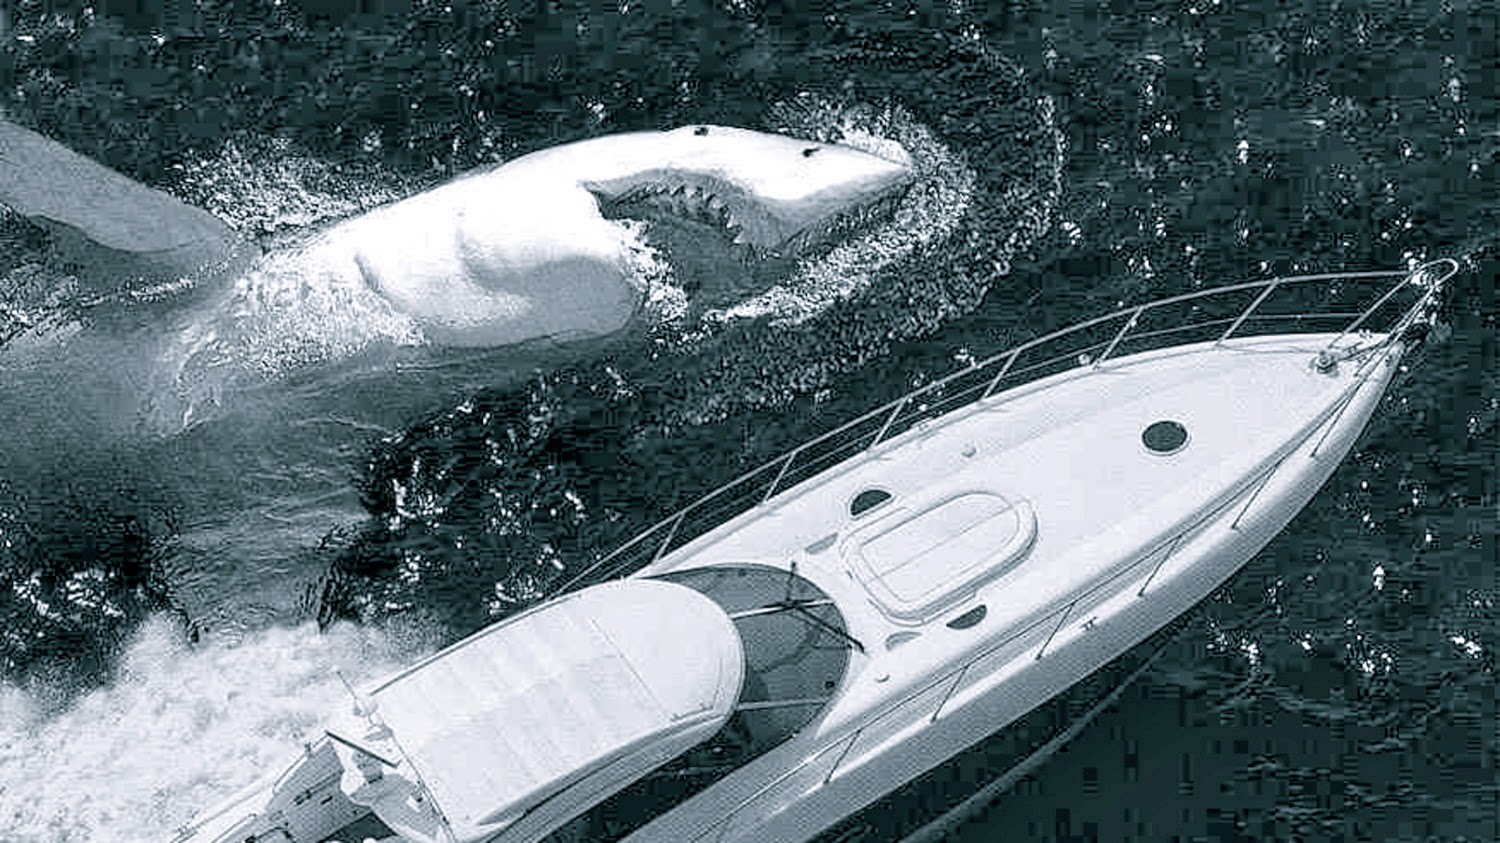 Megalodon Sightings Images - Reverse Search